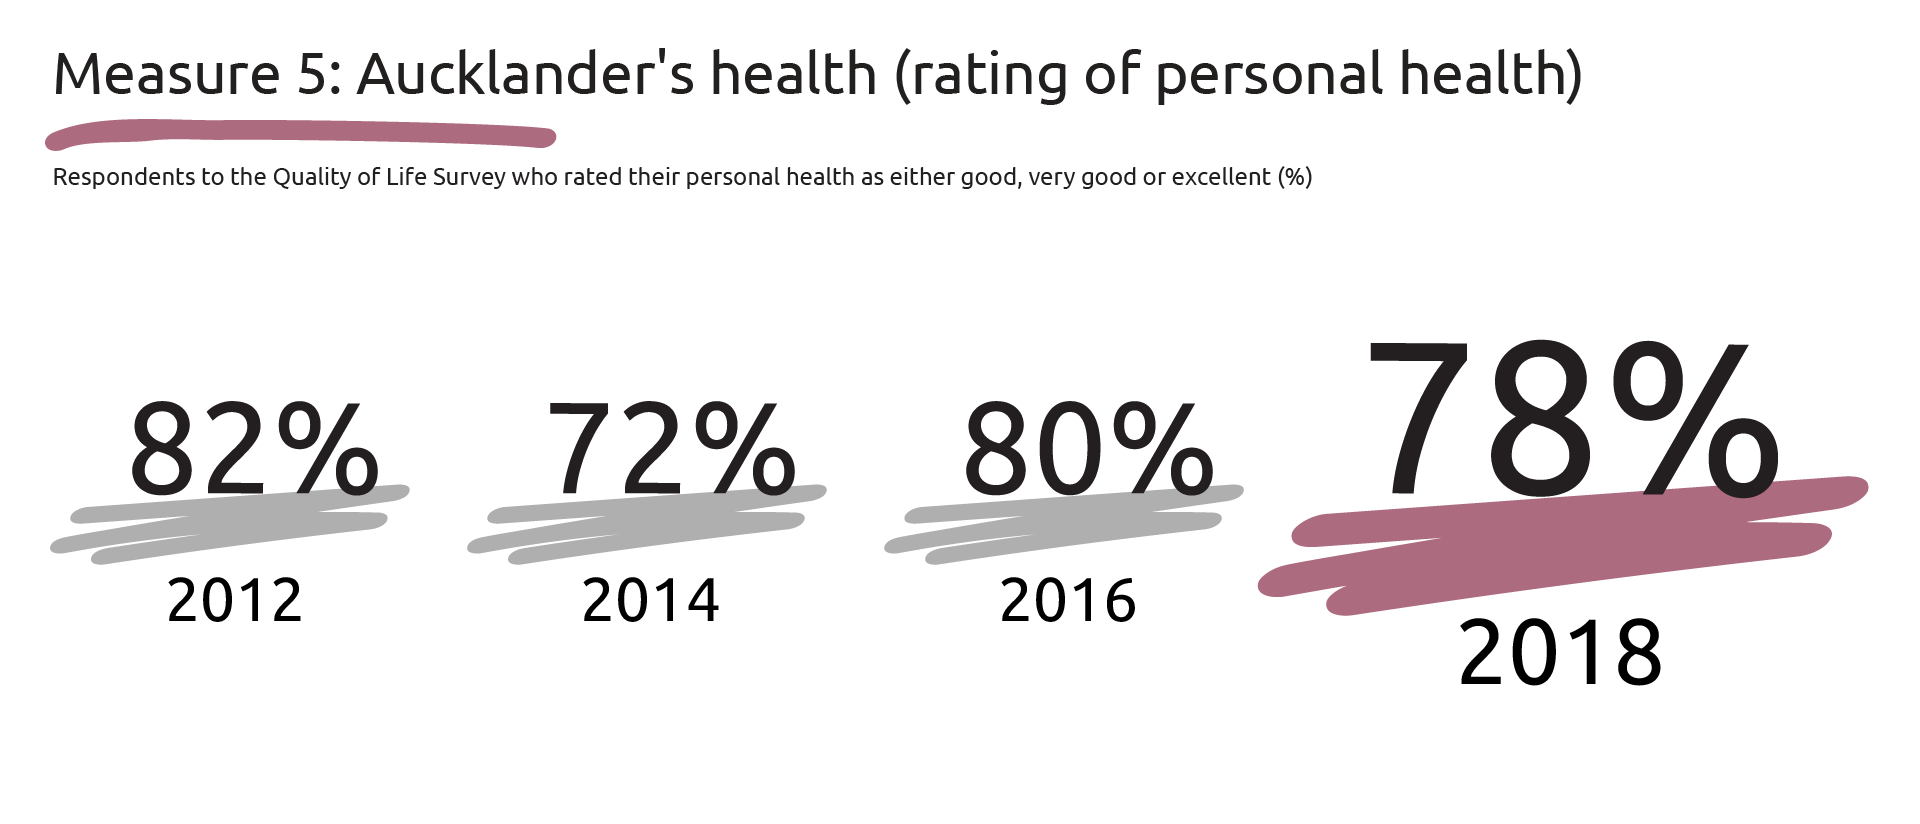 Graphic showing the percentages of respondents to the QOL survey who rated their personal health as either good, very good or excellent: 2012-82 per cent, 2014-72 per cent, 2016-80 per cent and 2018-78 per cent.